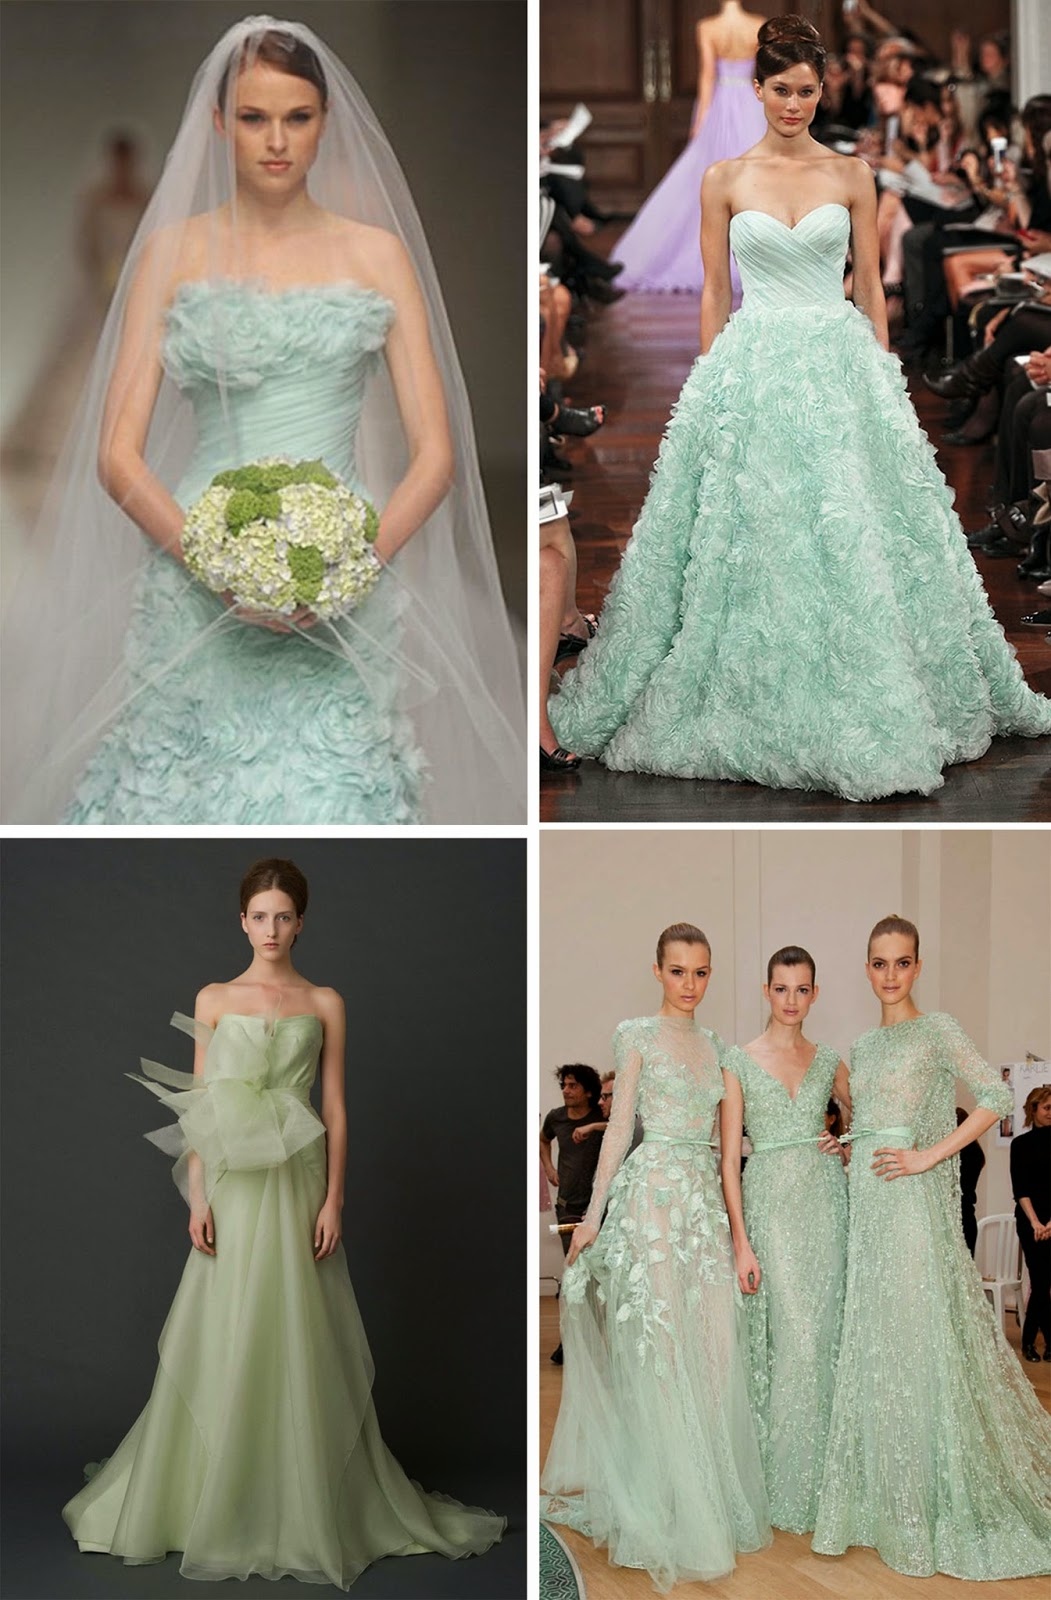 Mint Color Dress For Wedding | Wedding